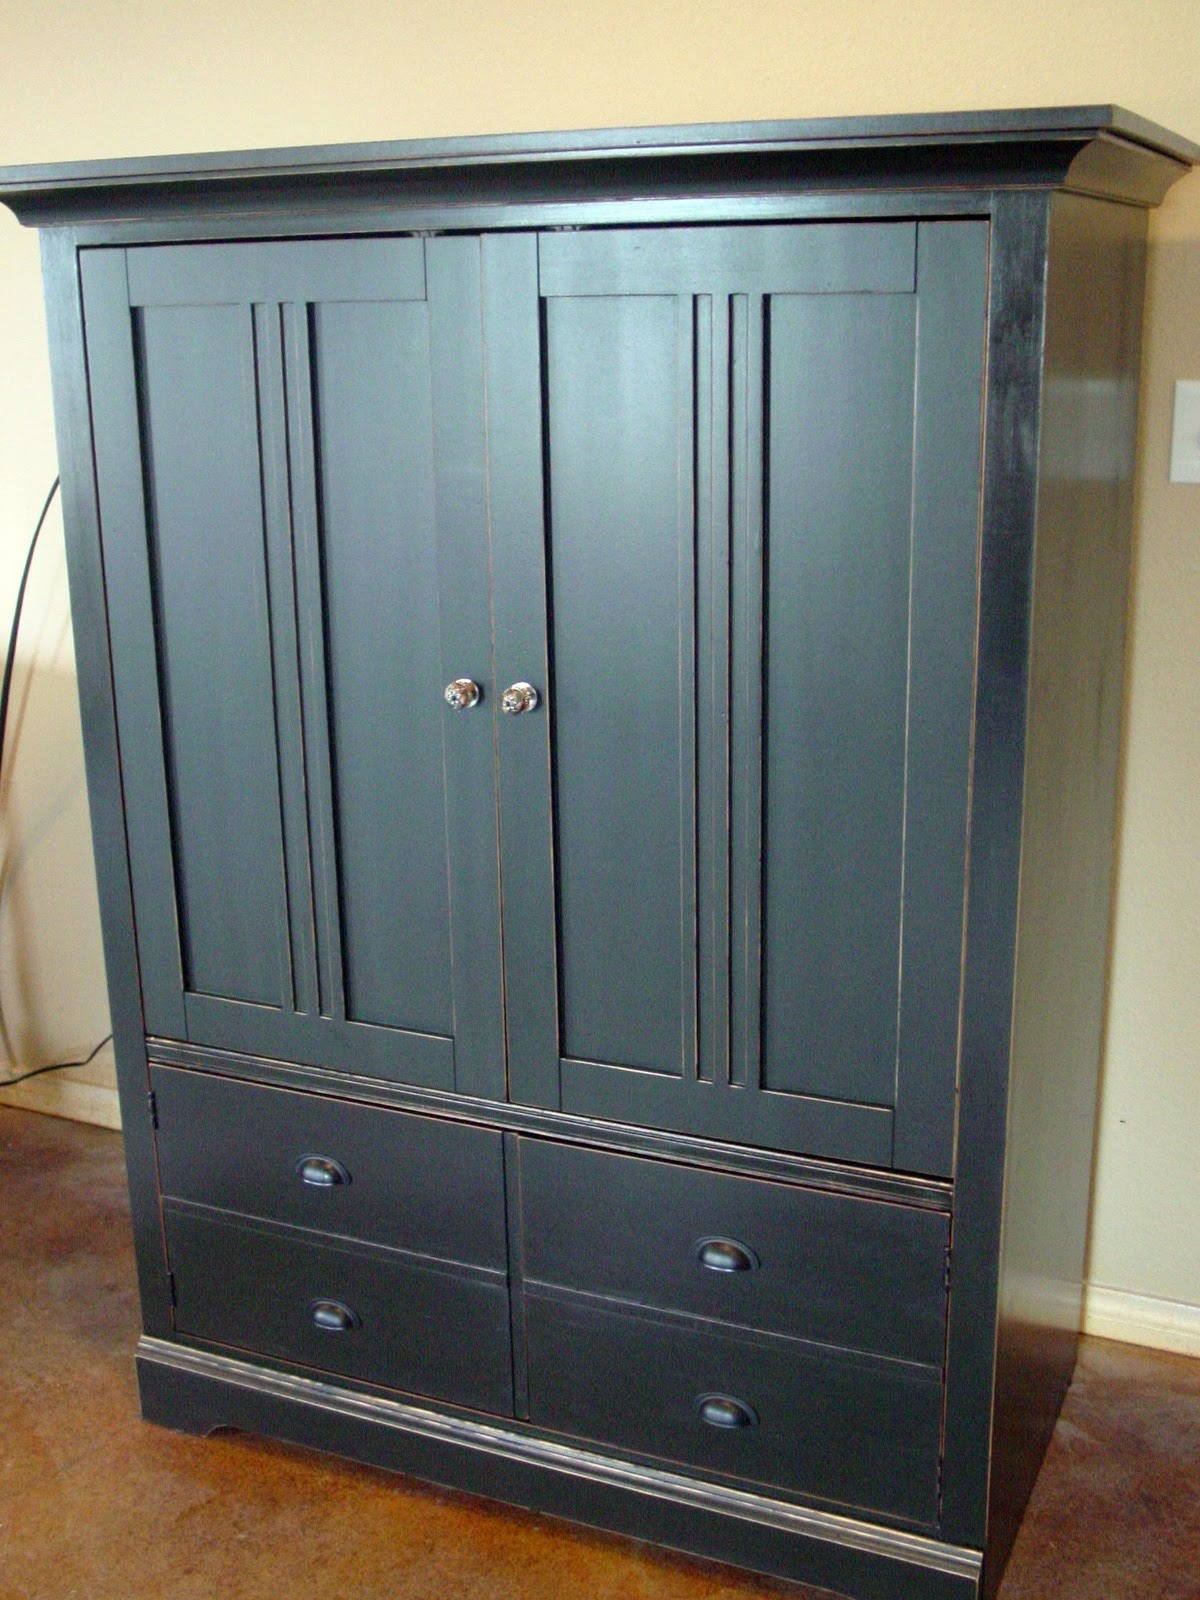 Secondhand Charm: Bassett Entertainment Armoire Cabinet ...